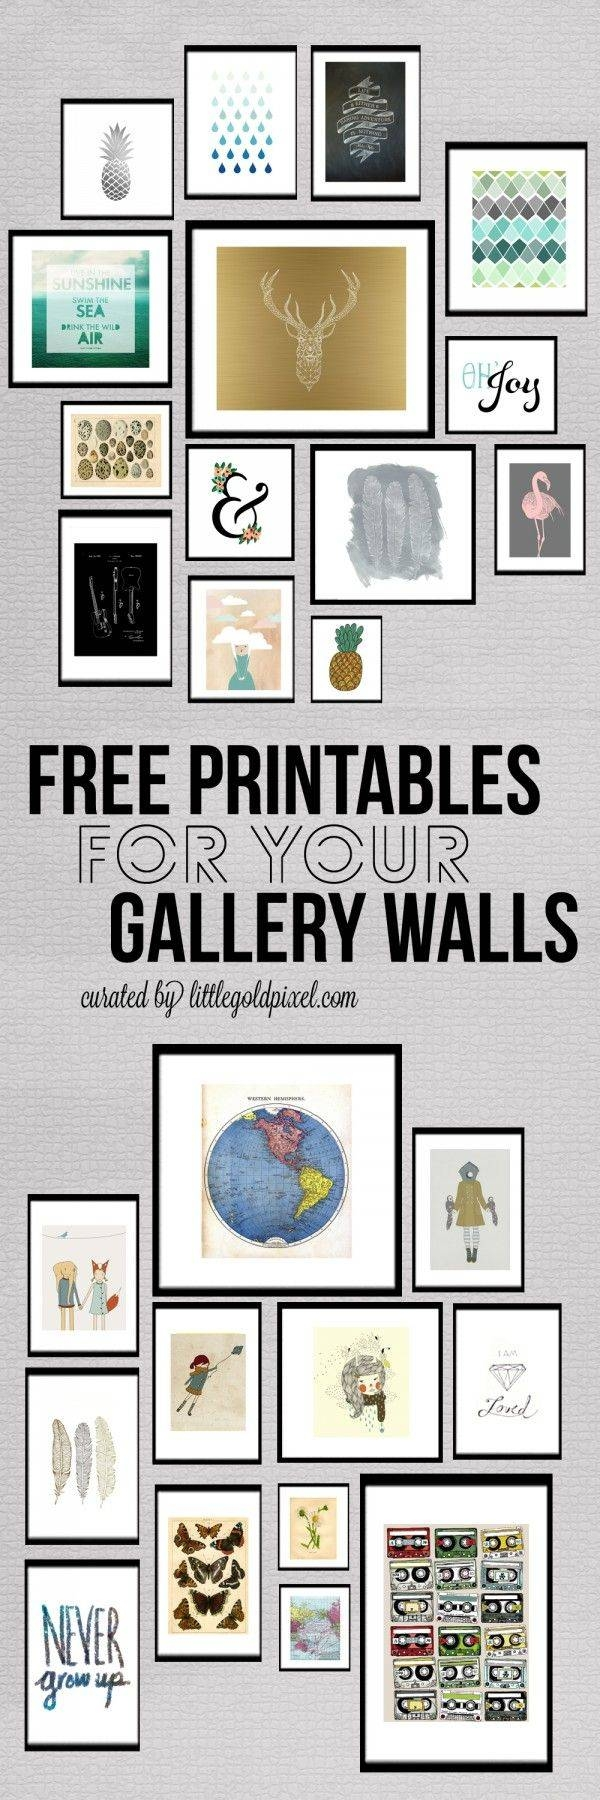 Best 25+ Teen Wall Decor Ideas On Pinterest | Bedroom Design For With Regard To 2017 Wall Art For Teenagers (View 20 of 25)